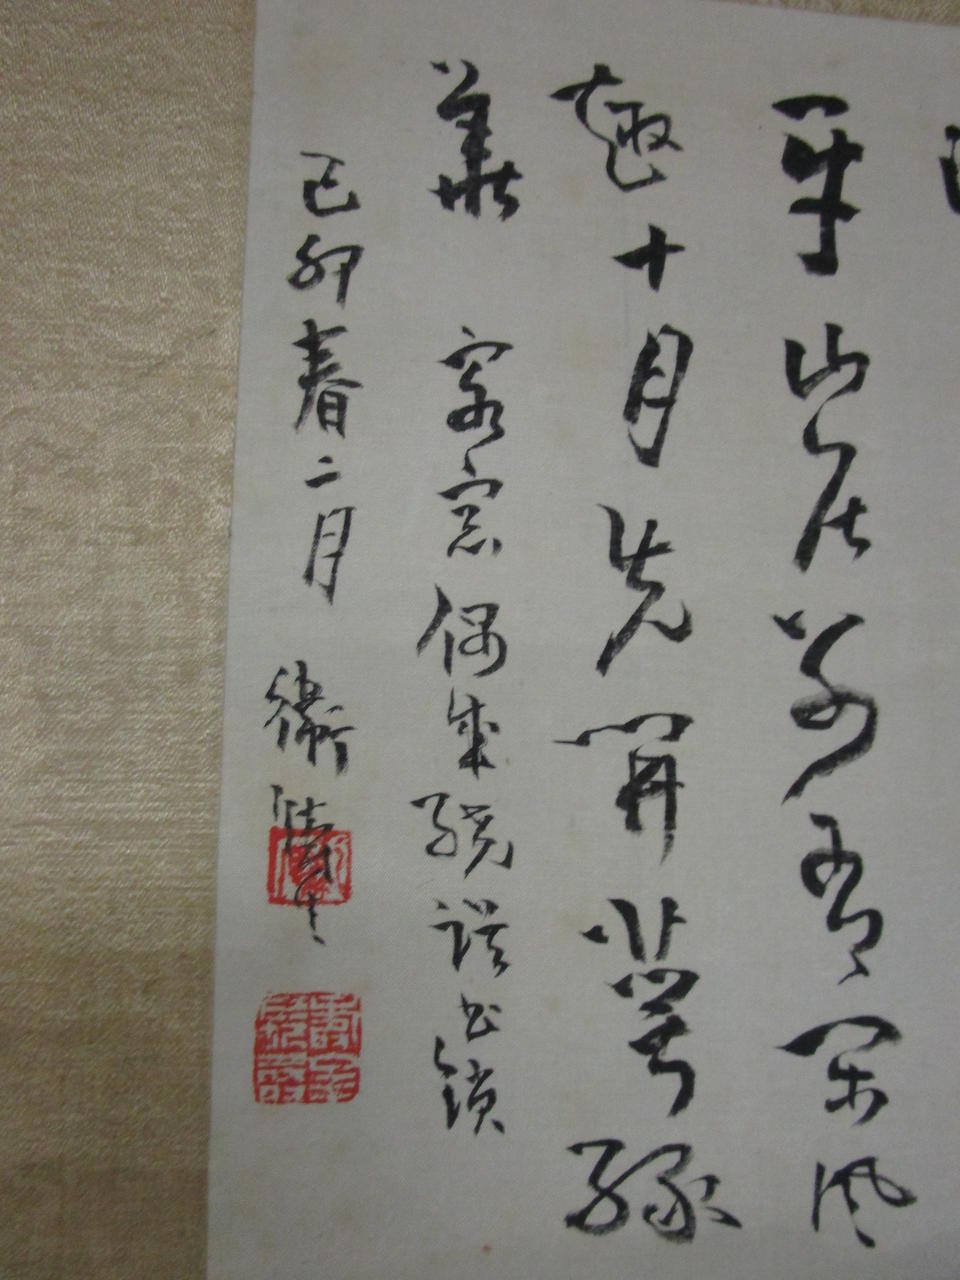 Various Artists (late 19th century) Calligraphy, Landscapes and Rocks